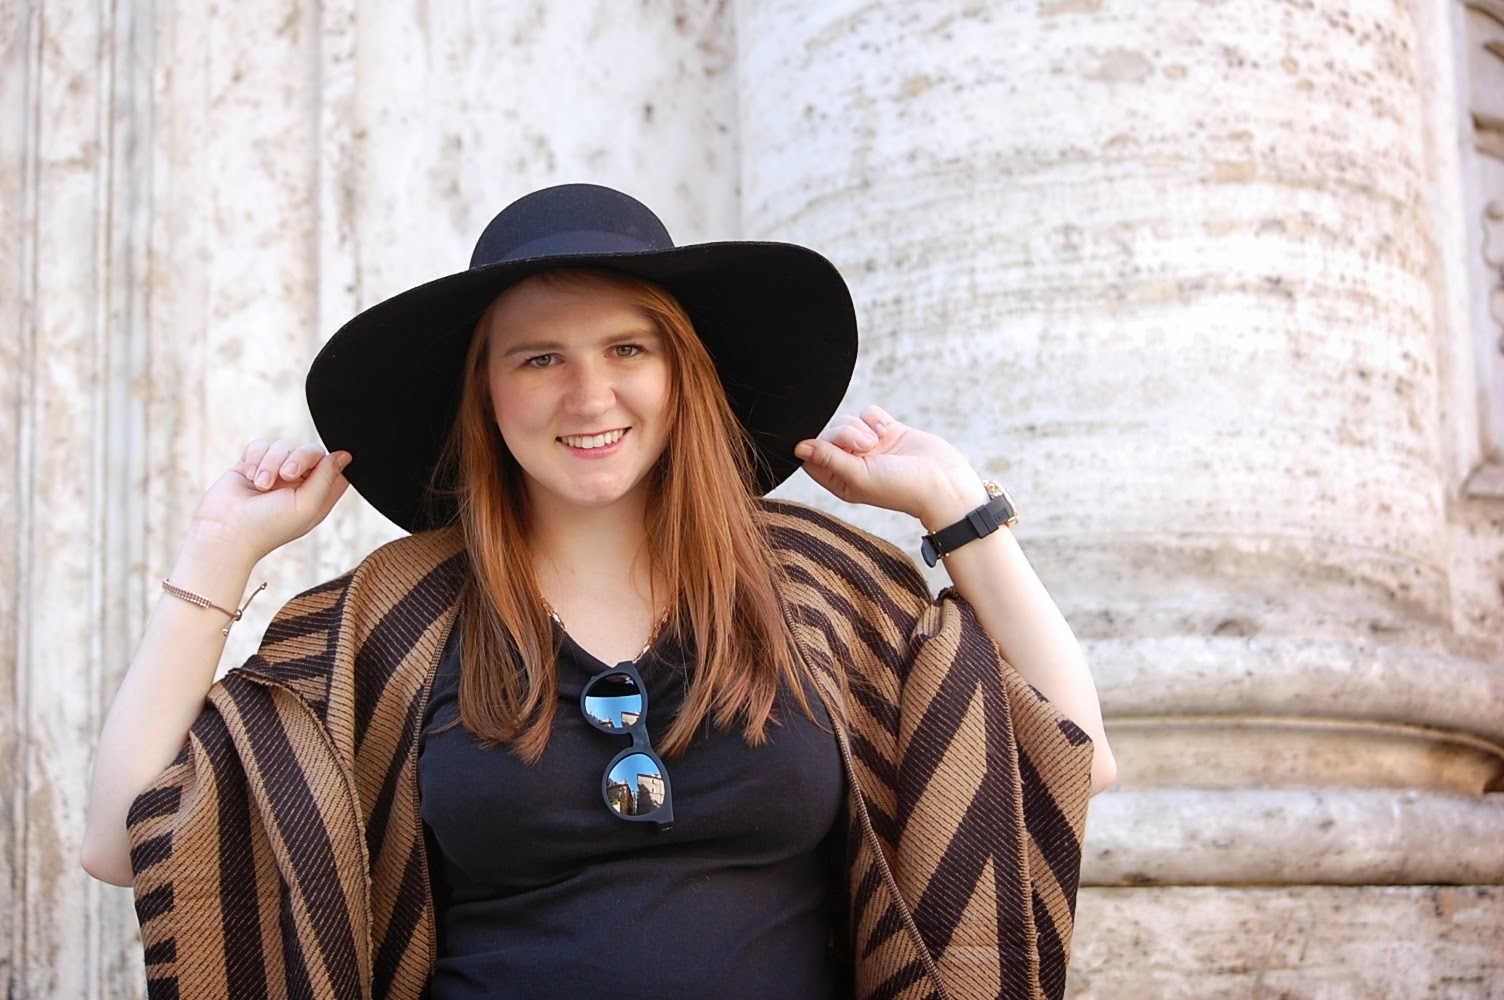 stradivarius poncho hat fashion blogger outfit style